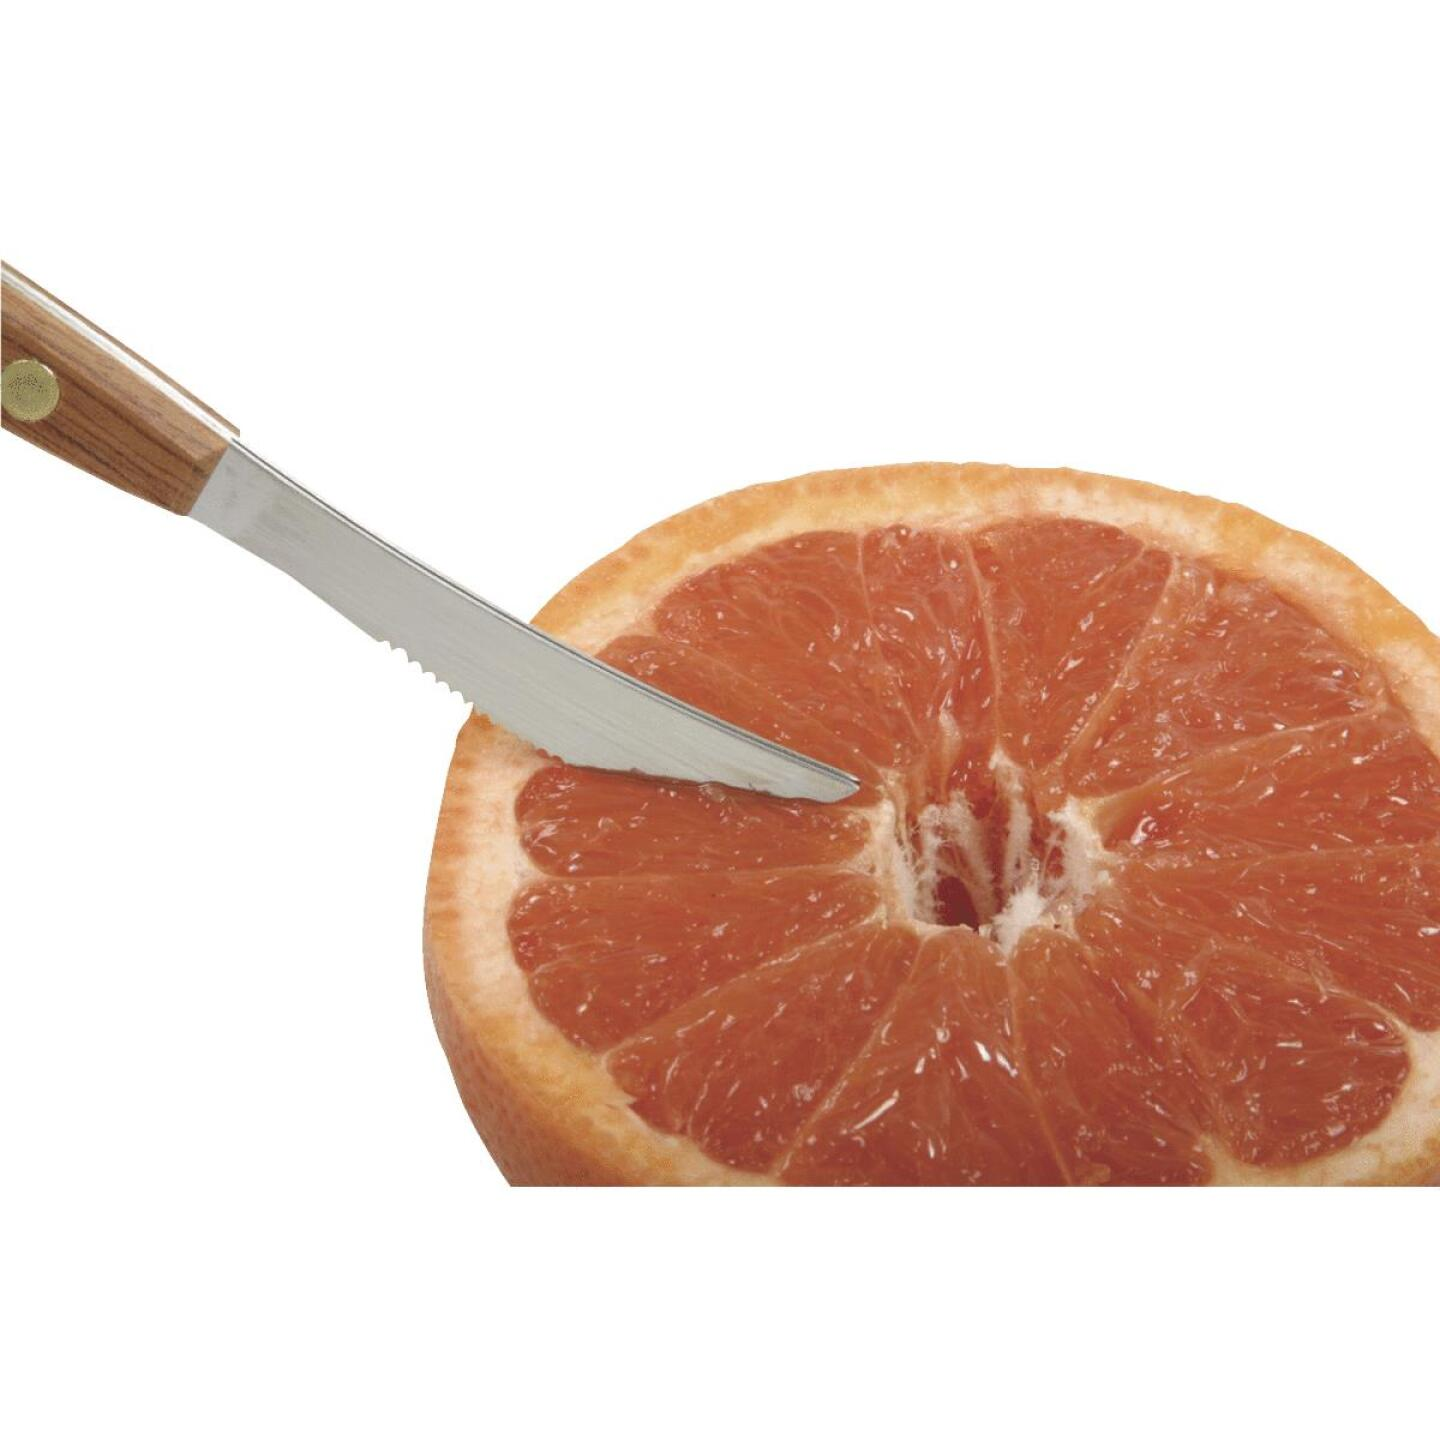 Norpro Grapefruit Knife Image 2